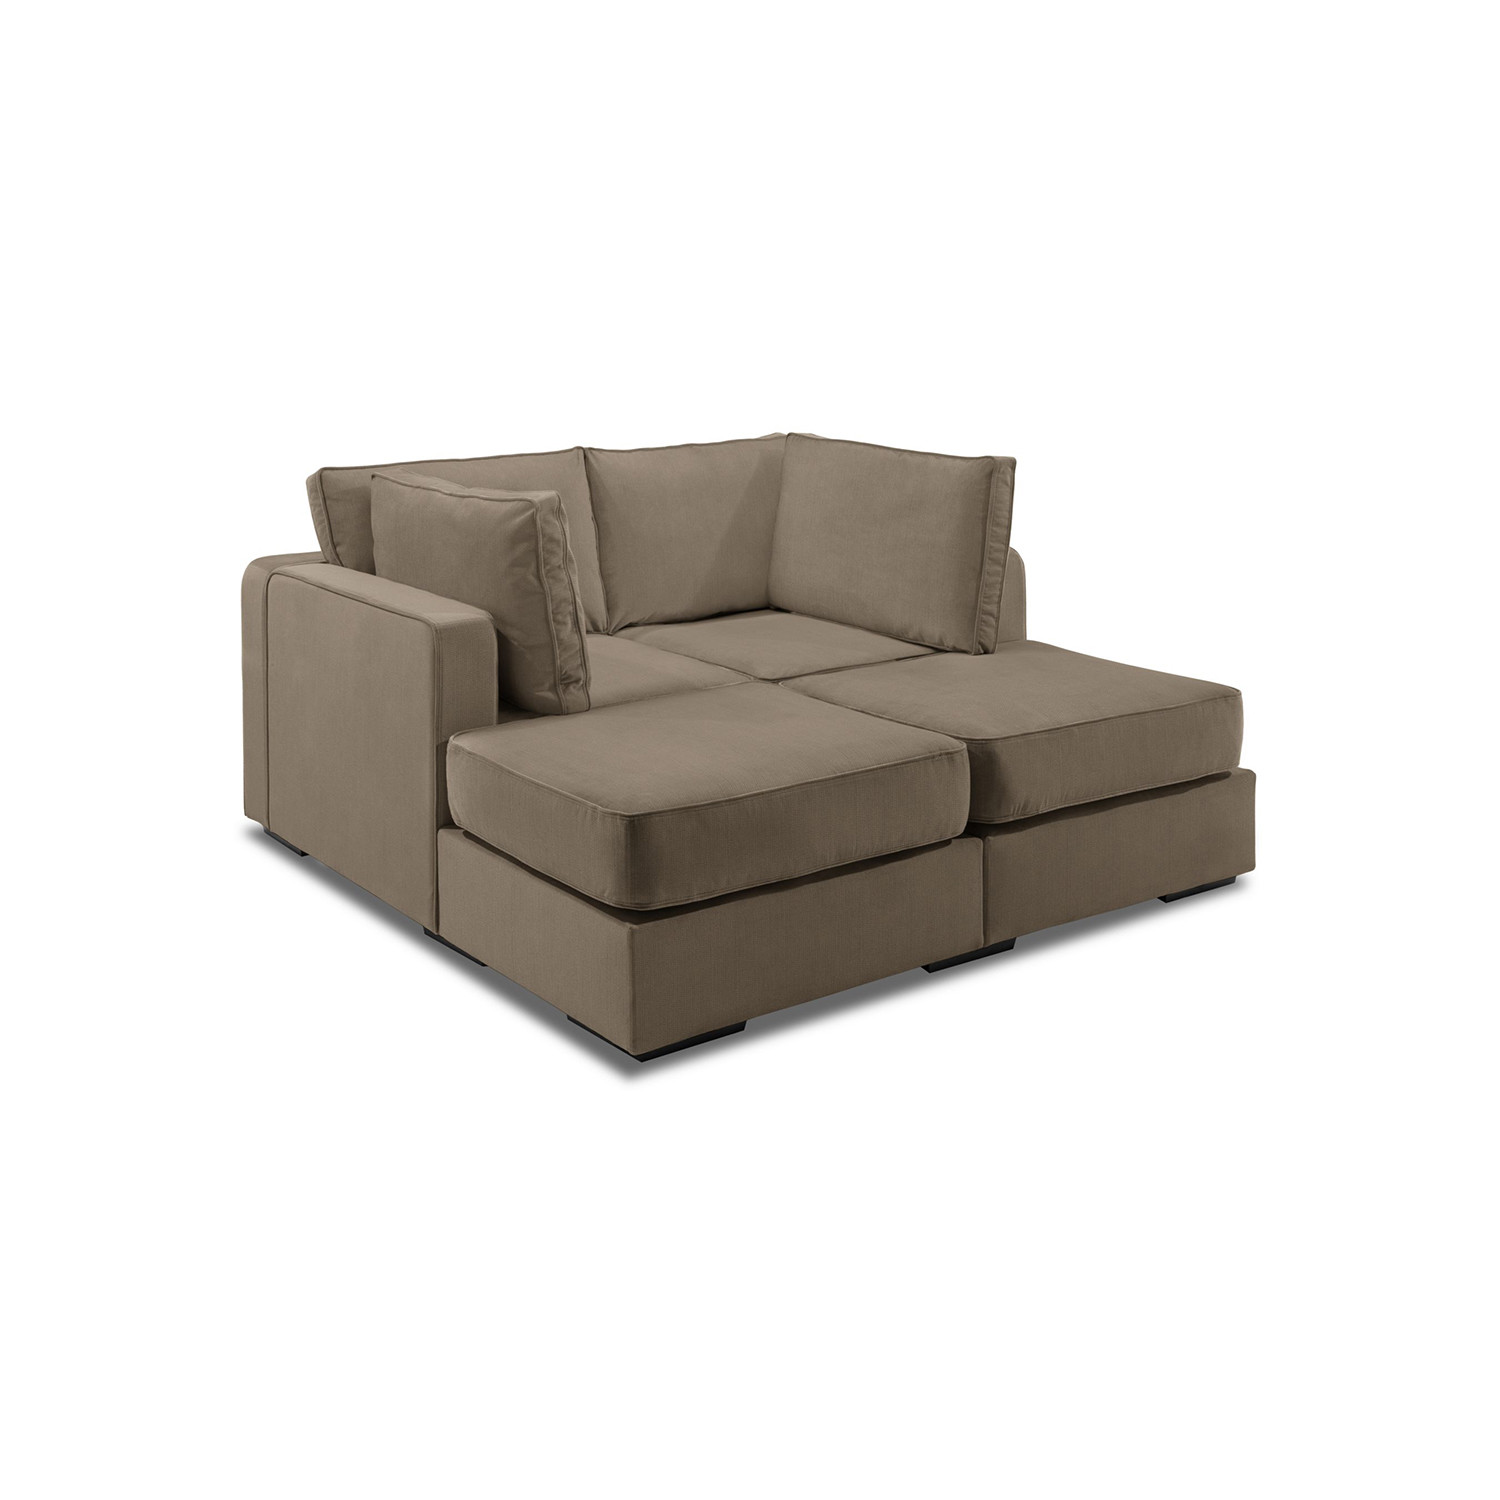 love sac chair deck chairs for boats 5 series sactionals m lounger taupe lovesac touch